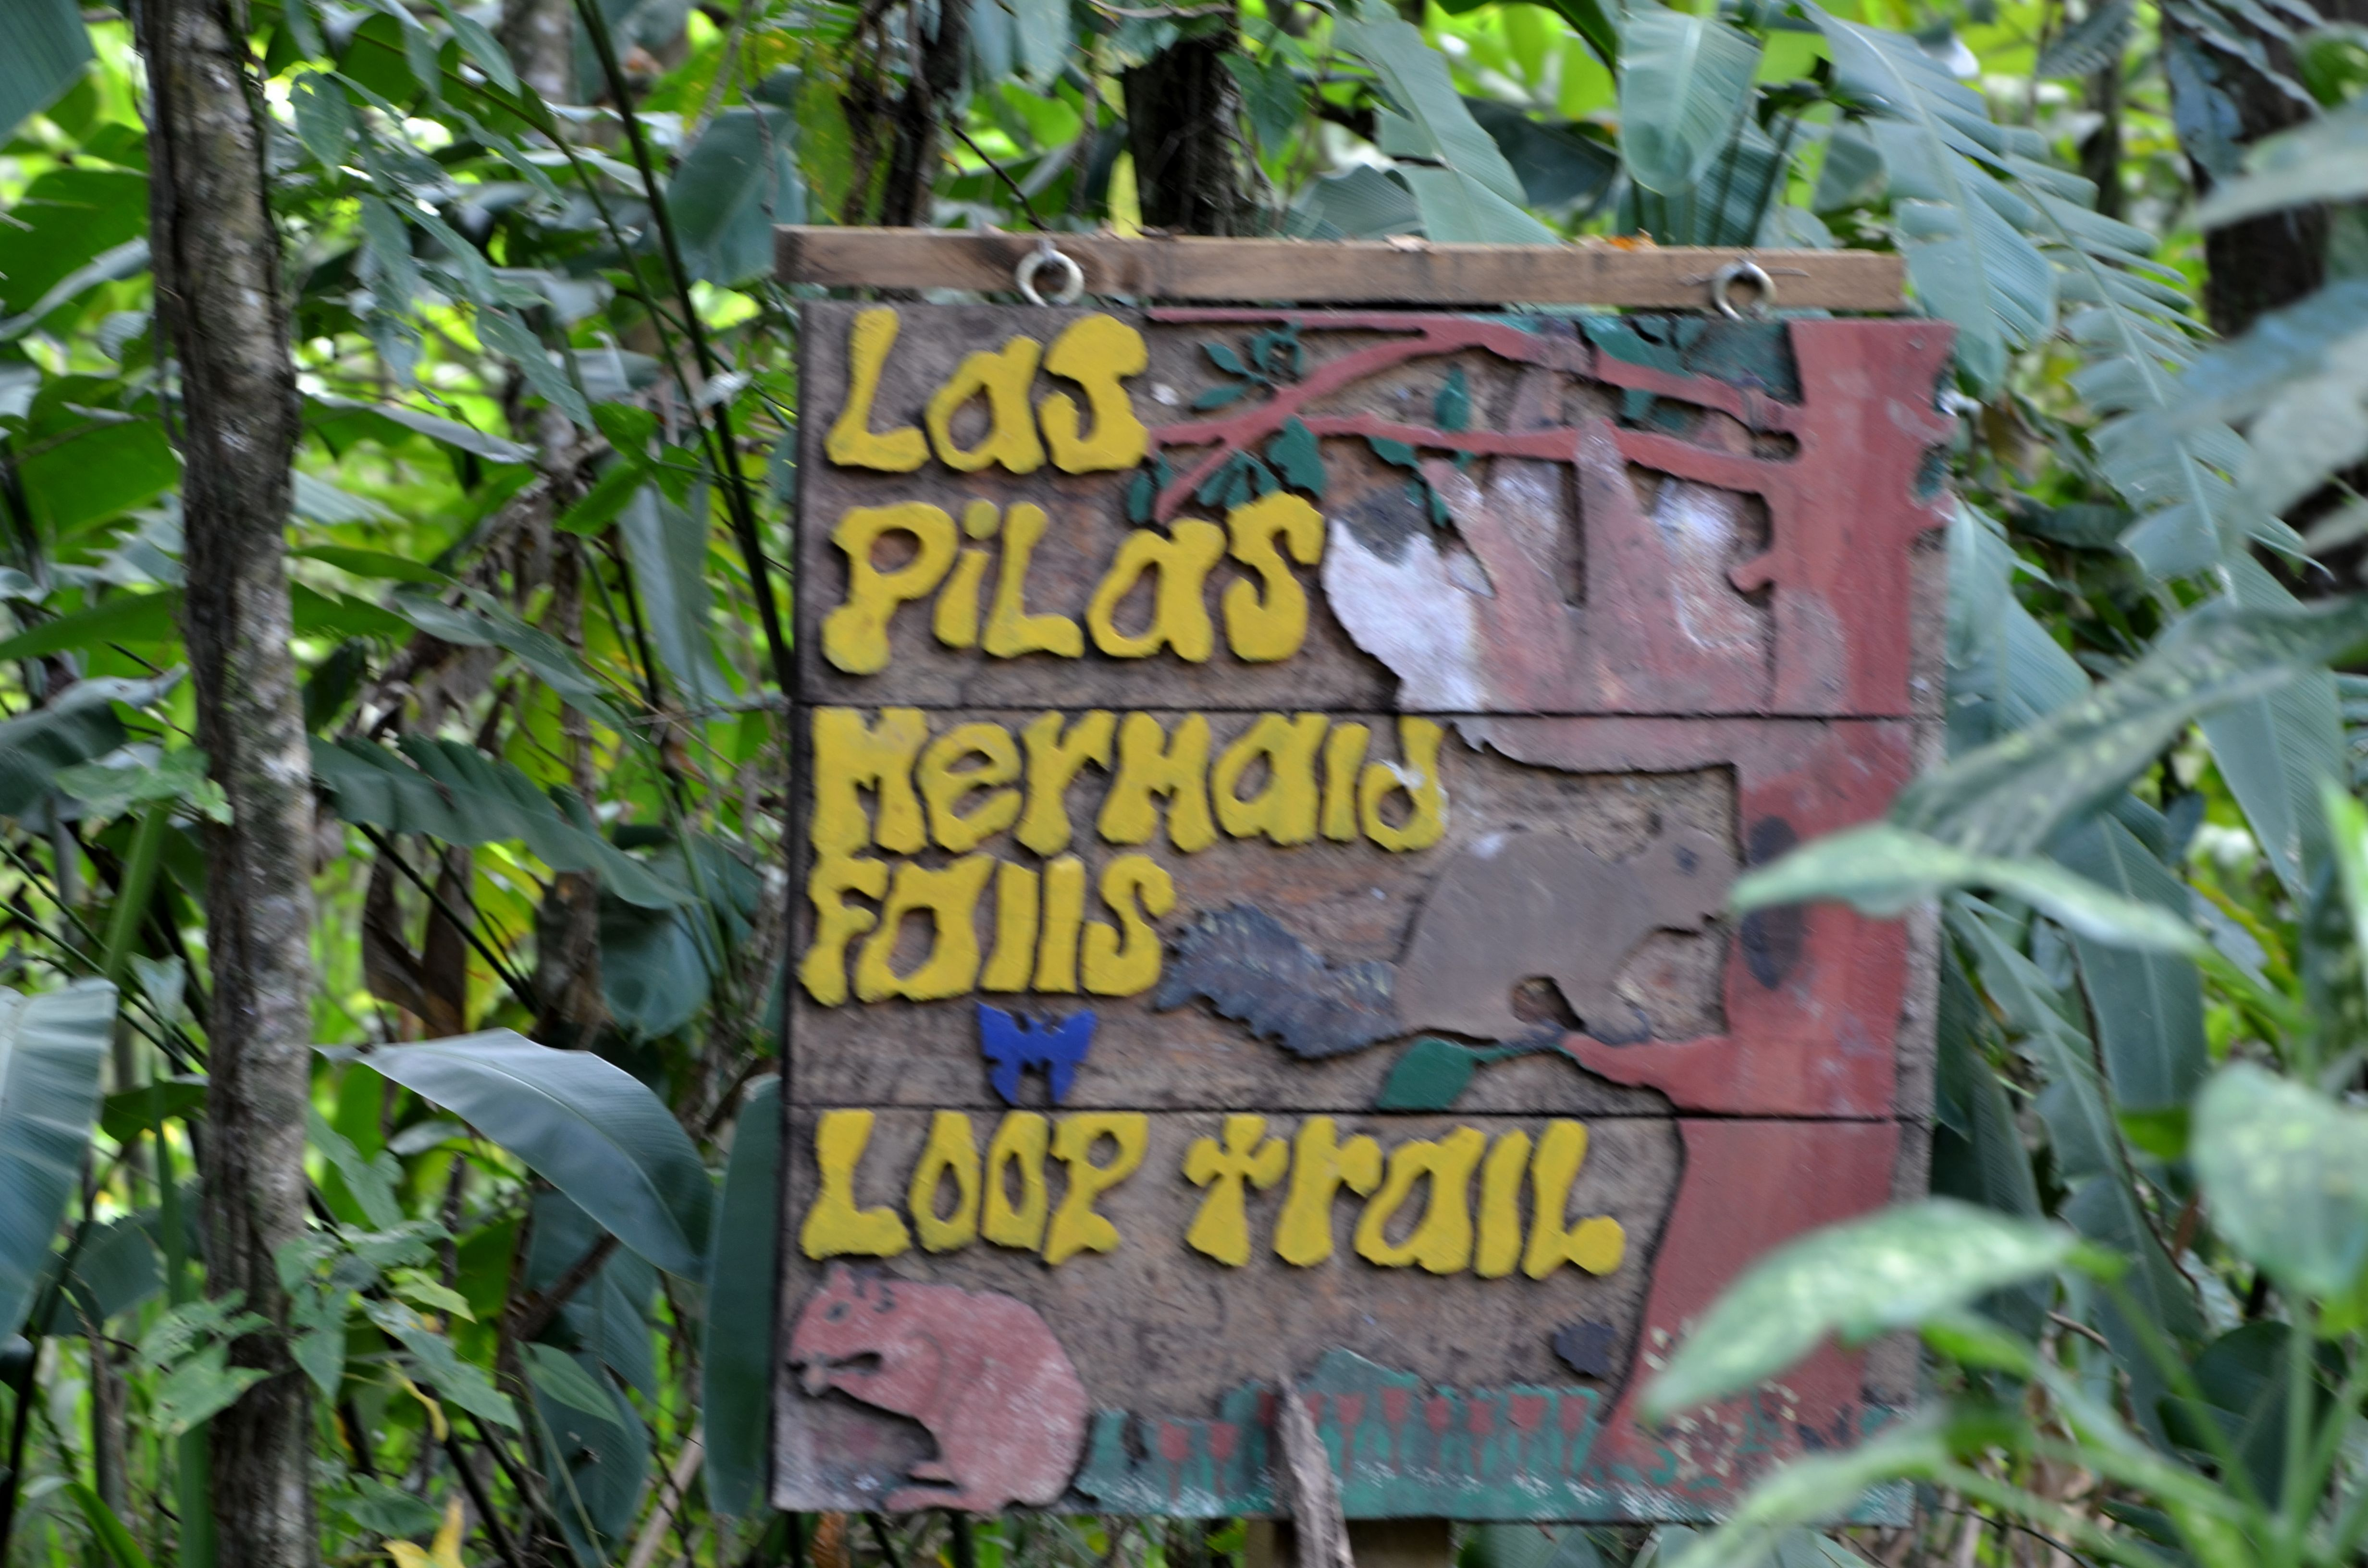 MermaidF alls - Sign